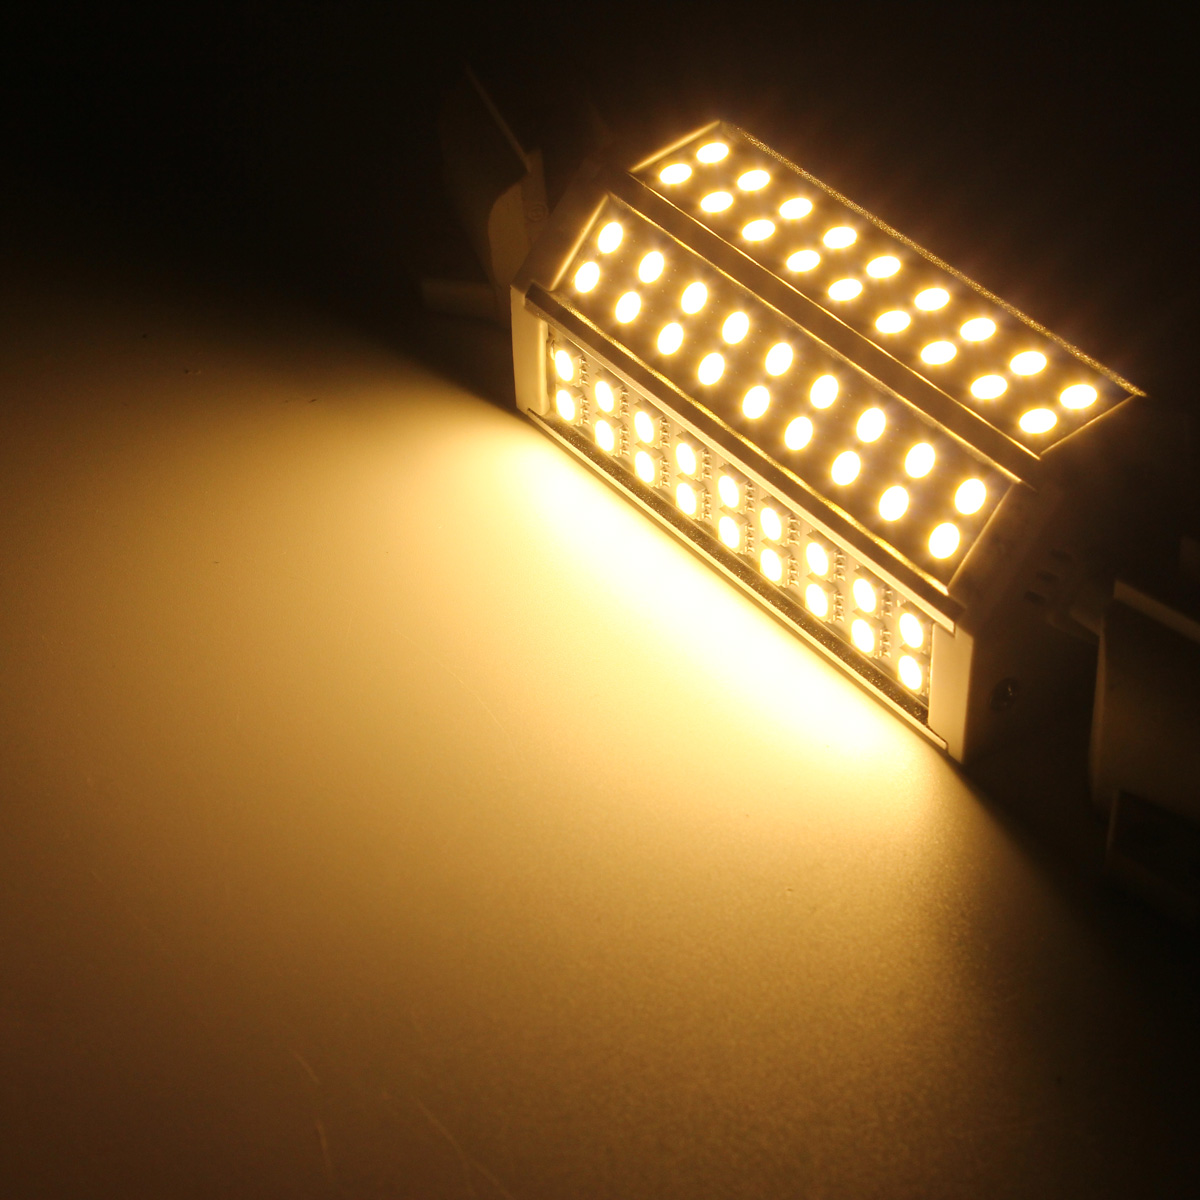 R7S 17W 54 SMD 5050 1300LM LED Bulb Flood Light Halogen Lamp Replacement AC 85-265V Non-Dimmable